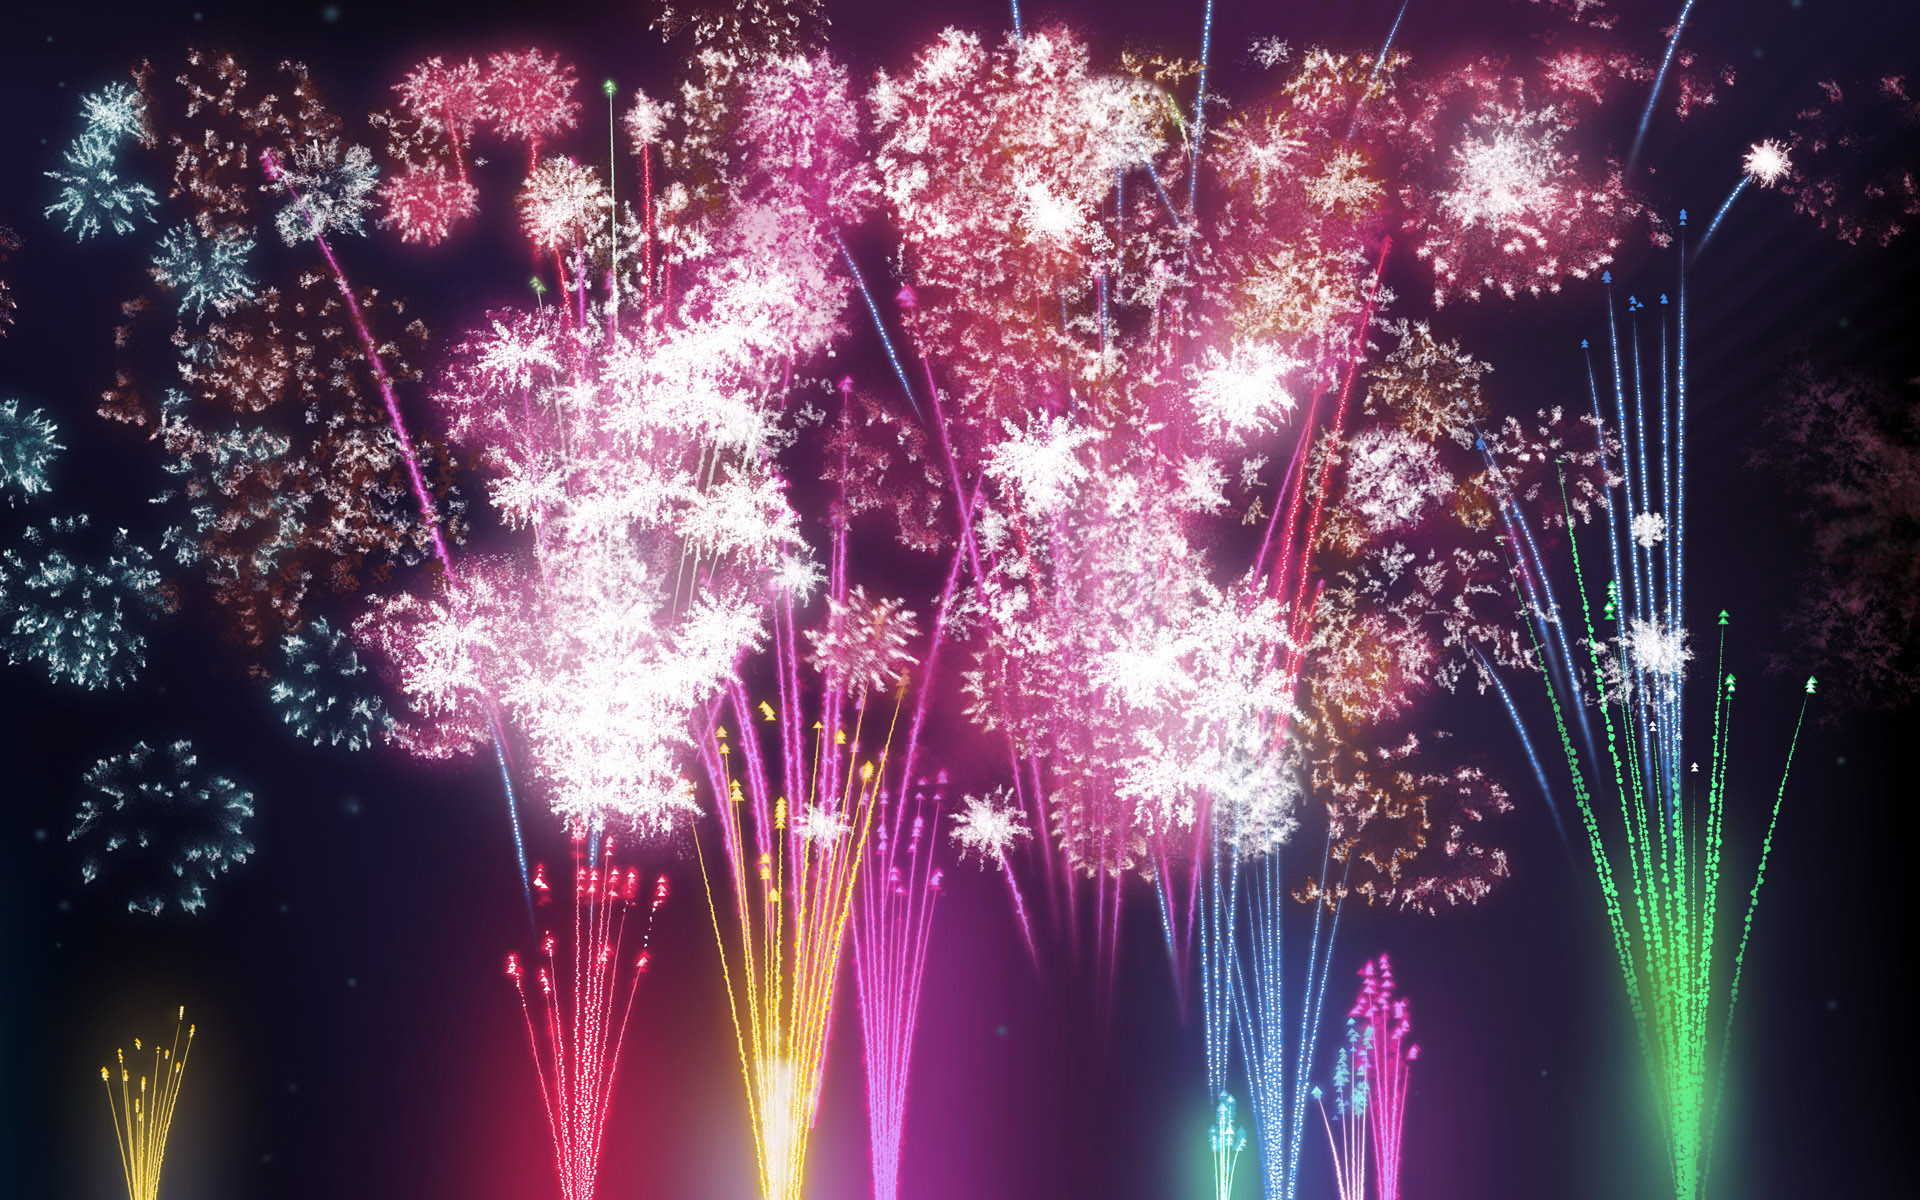 1920x1200 A proposal request for fireworks services is hooked to 10 civic events the  Halifax Regional Municipality will be hosting from June to December,  according to ...